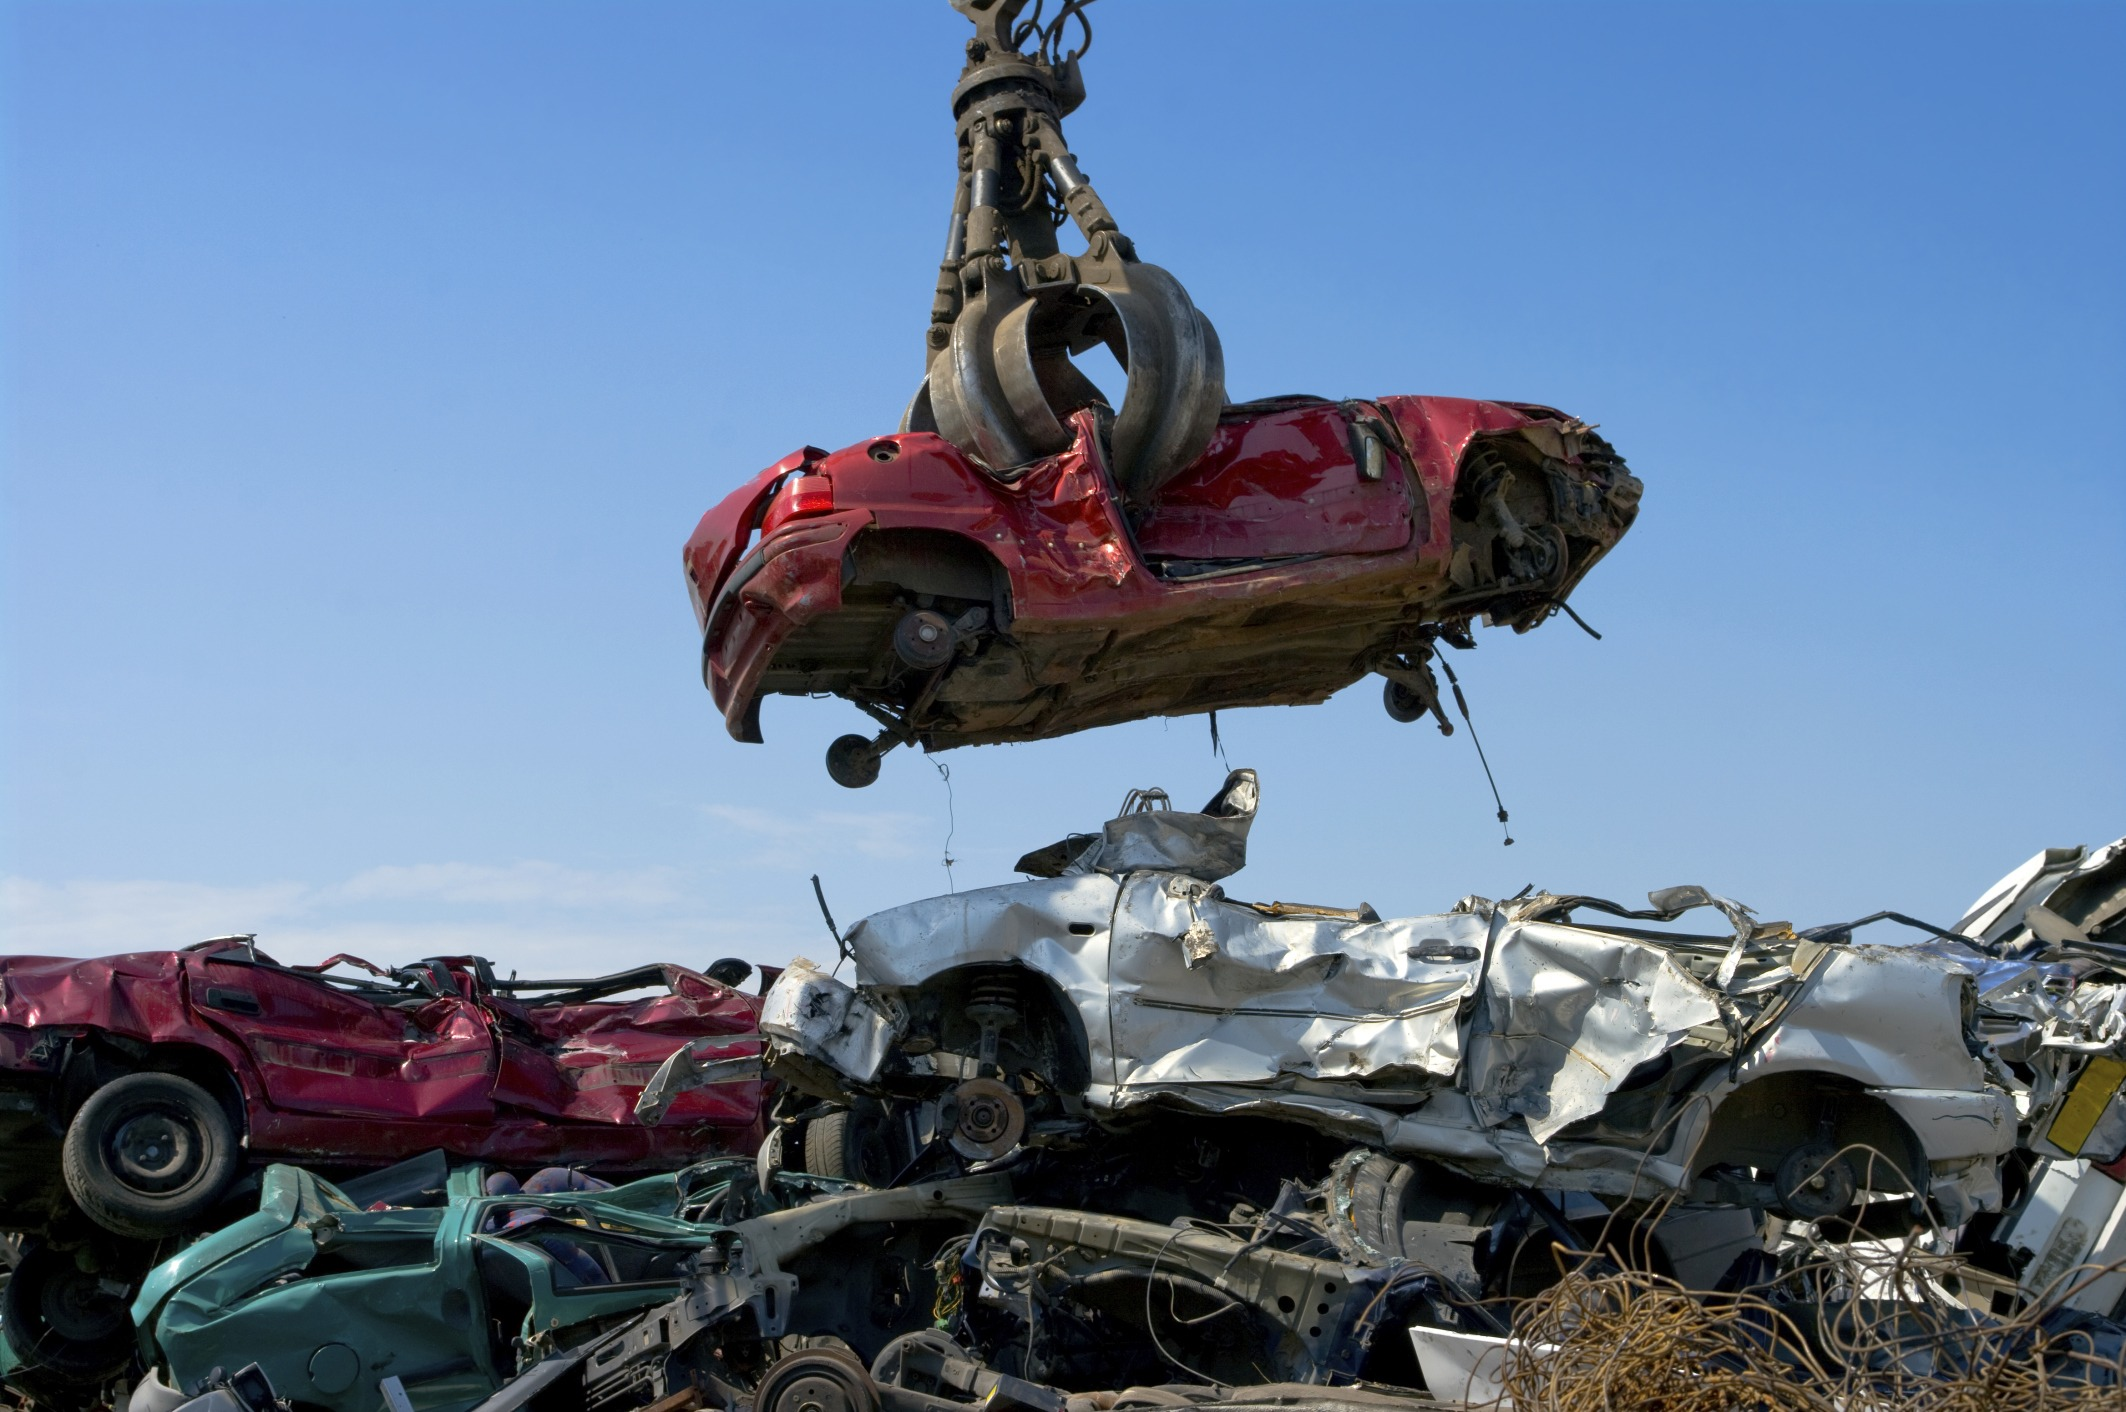 How much do you get for scrapping a car?